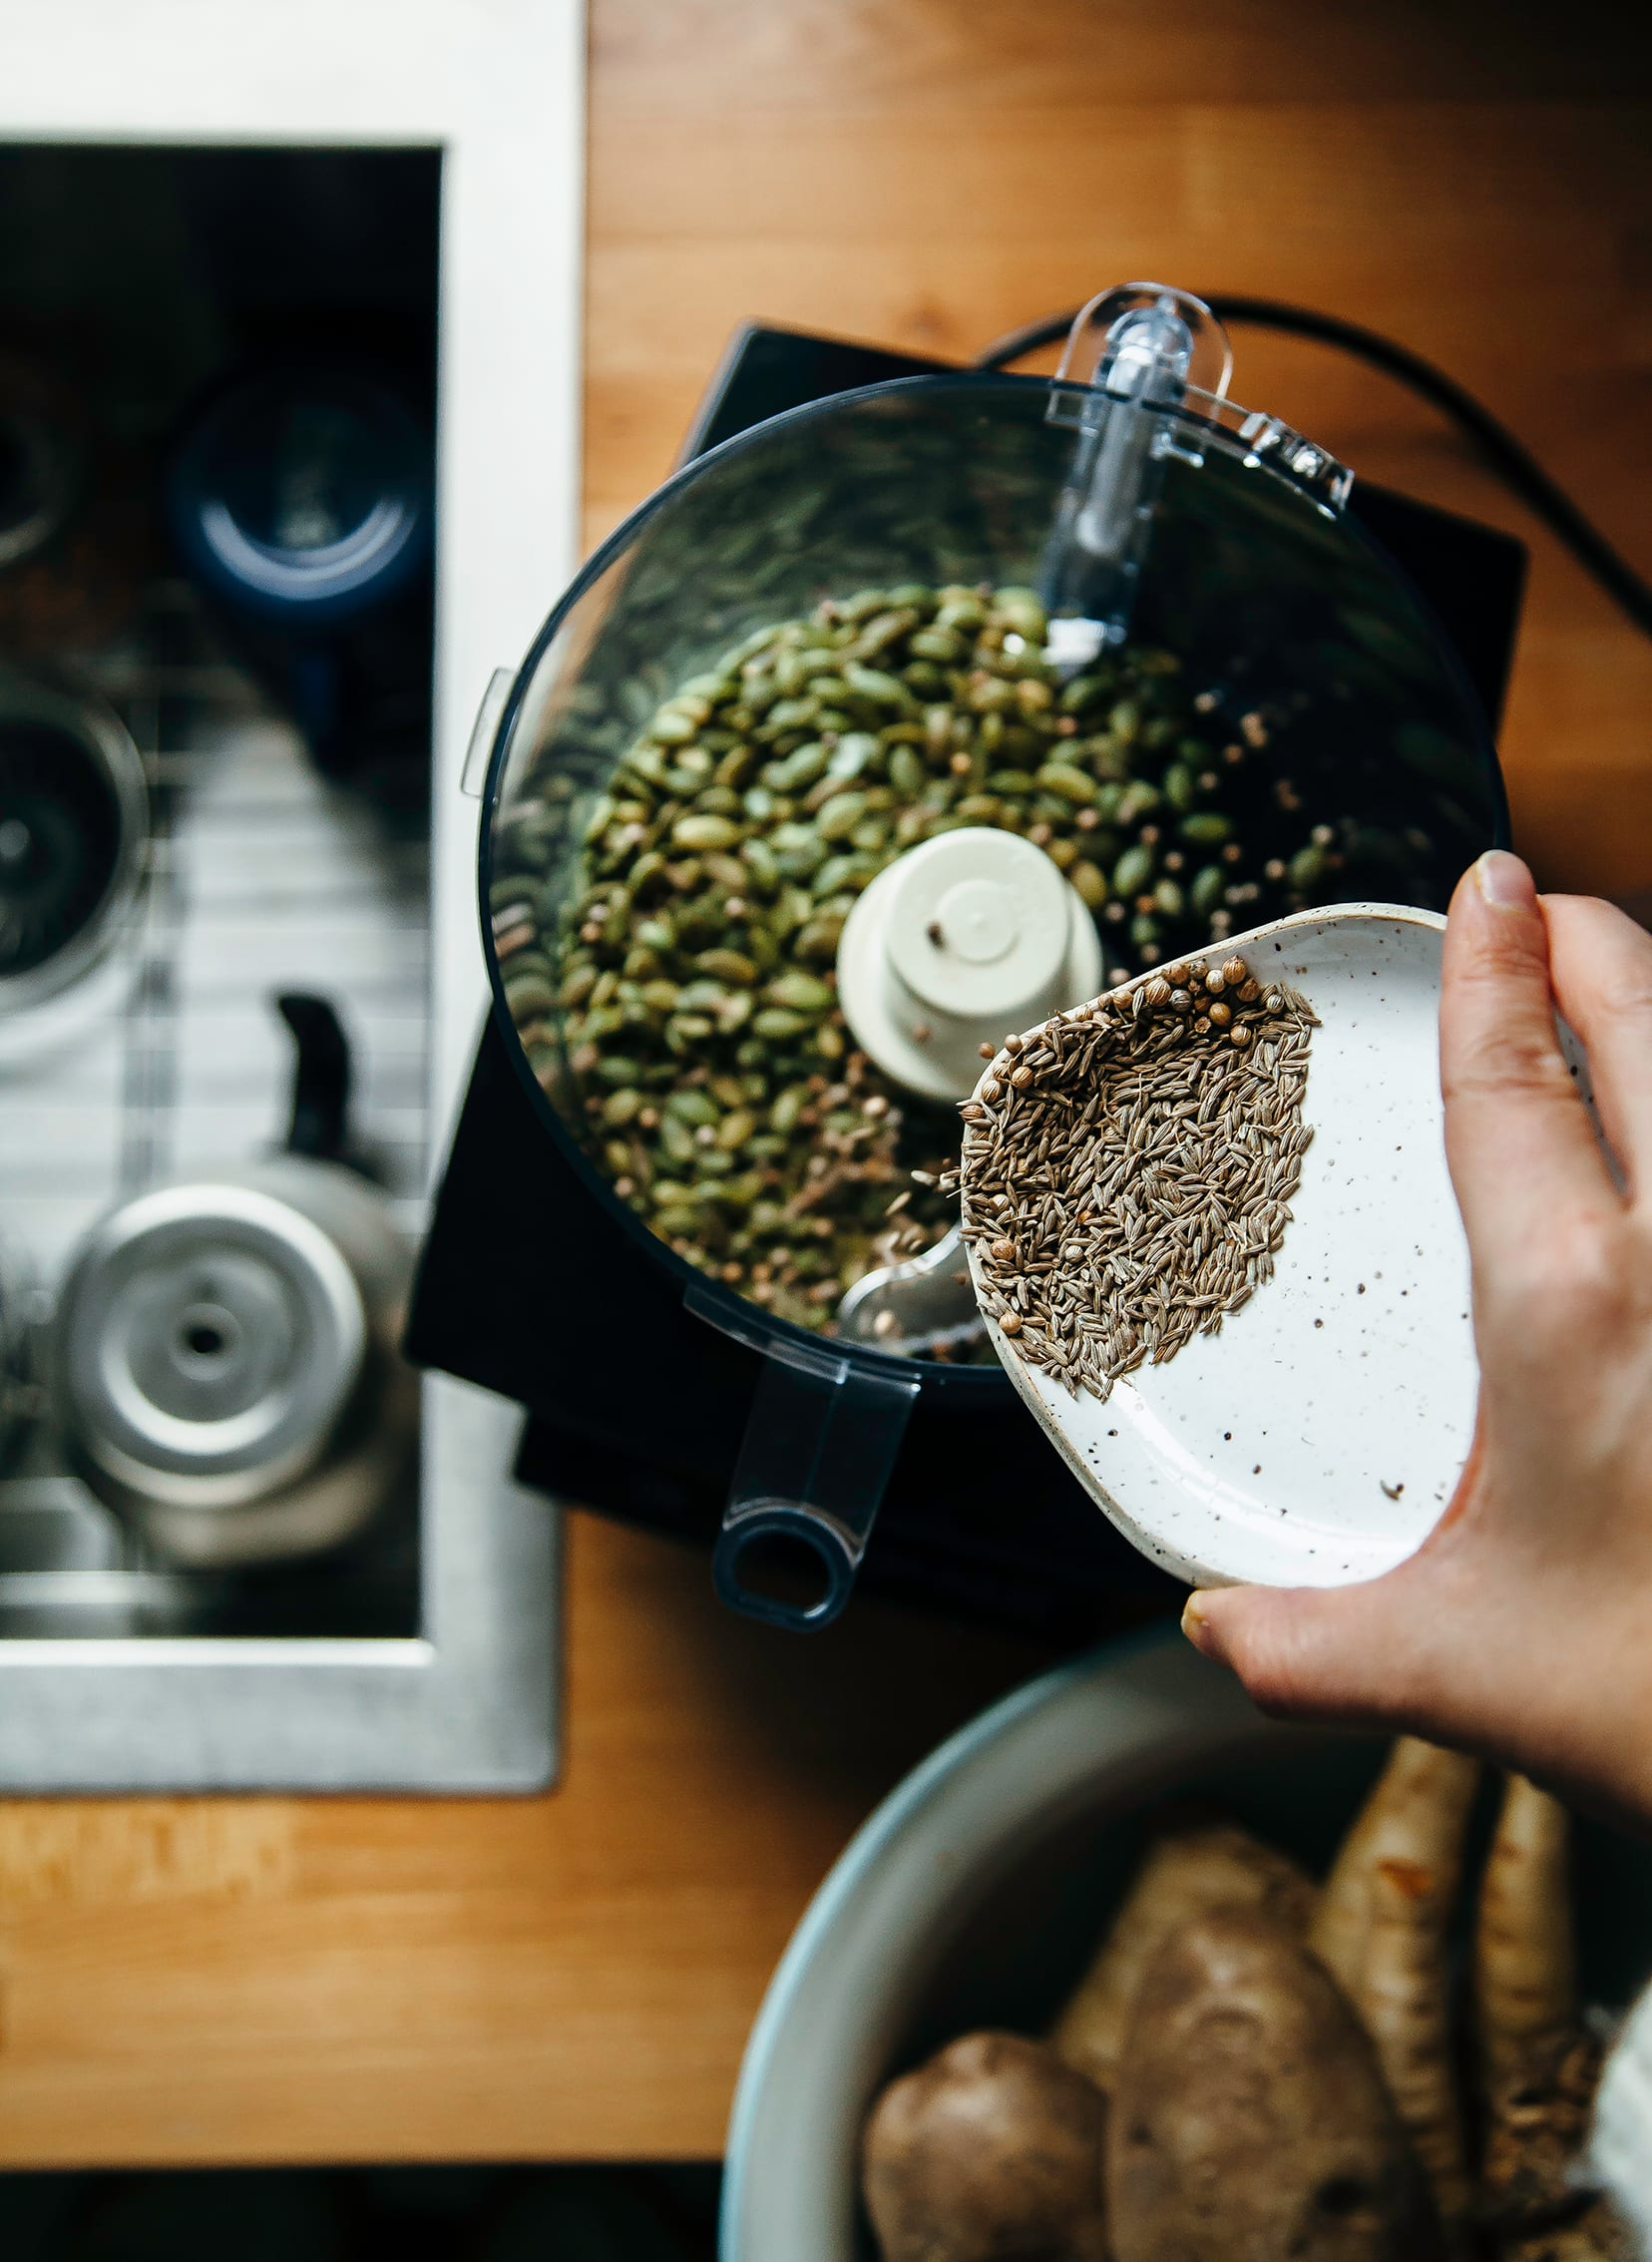 Image shows a hand pouring whole spices into a food processor.